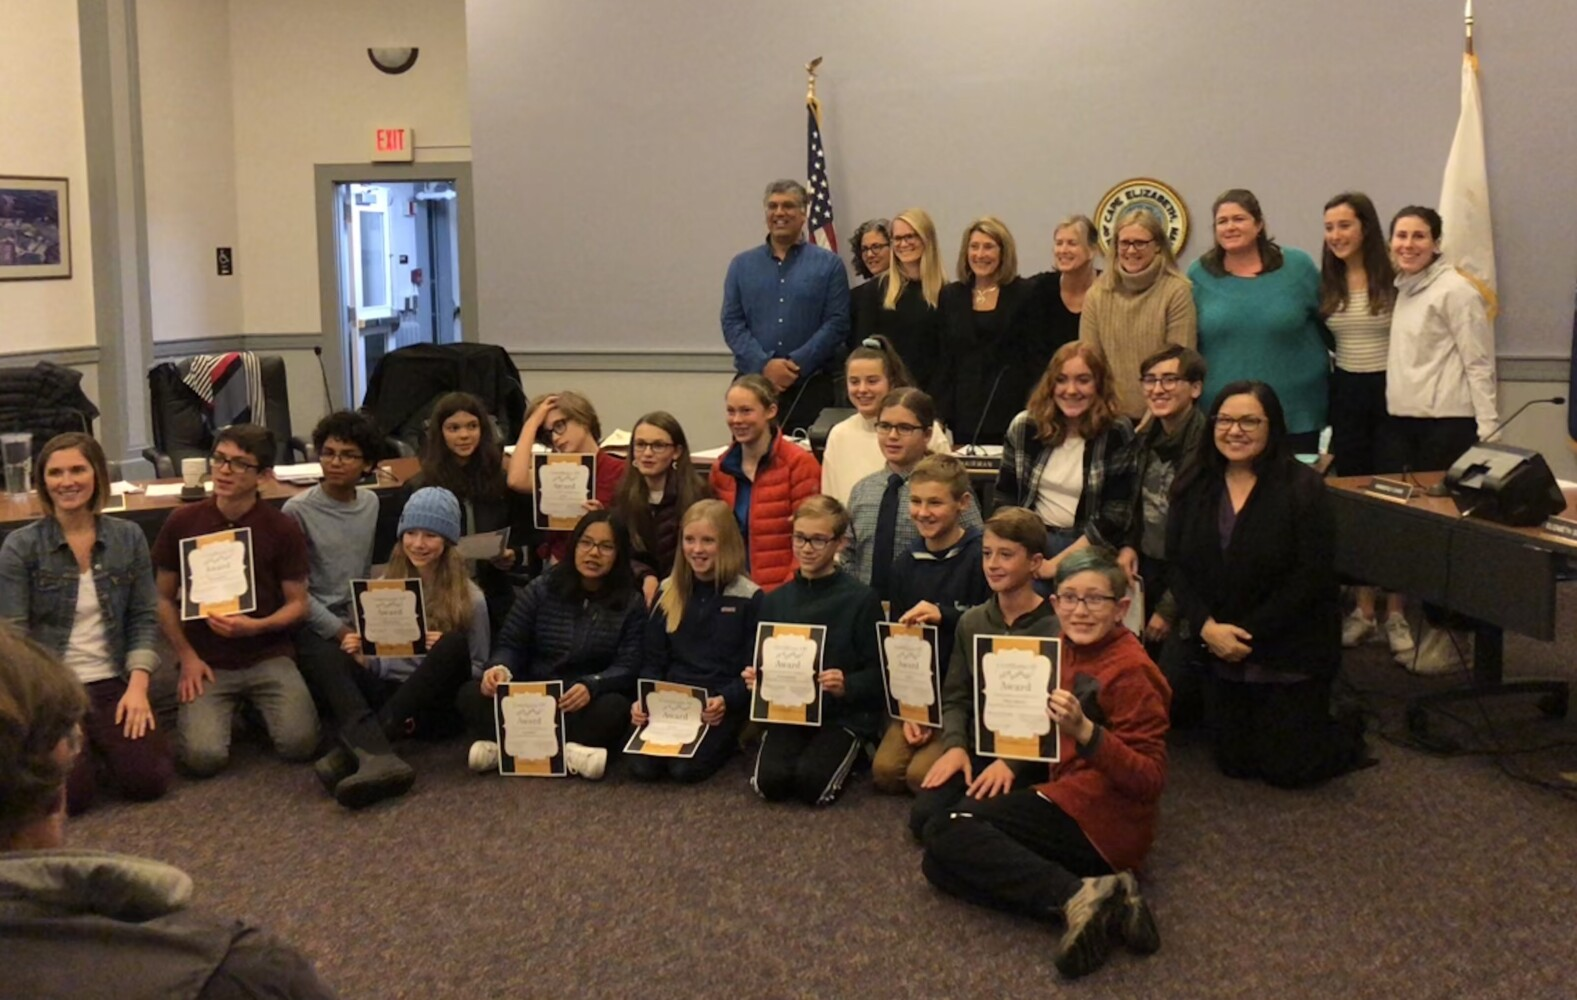 Cape Elizabeth Middle School and High School students and the school board celebrate the students' acceptance into this year's honors festivals.